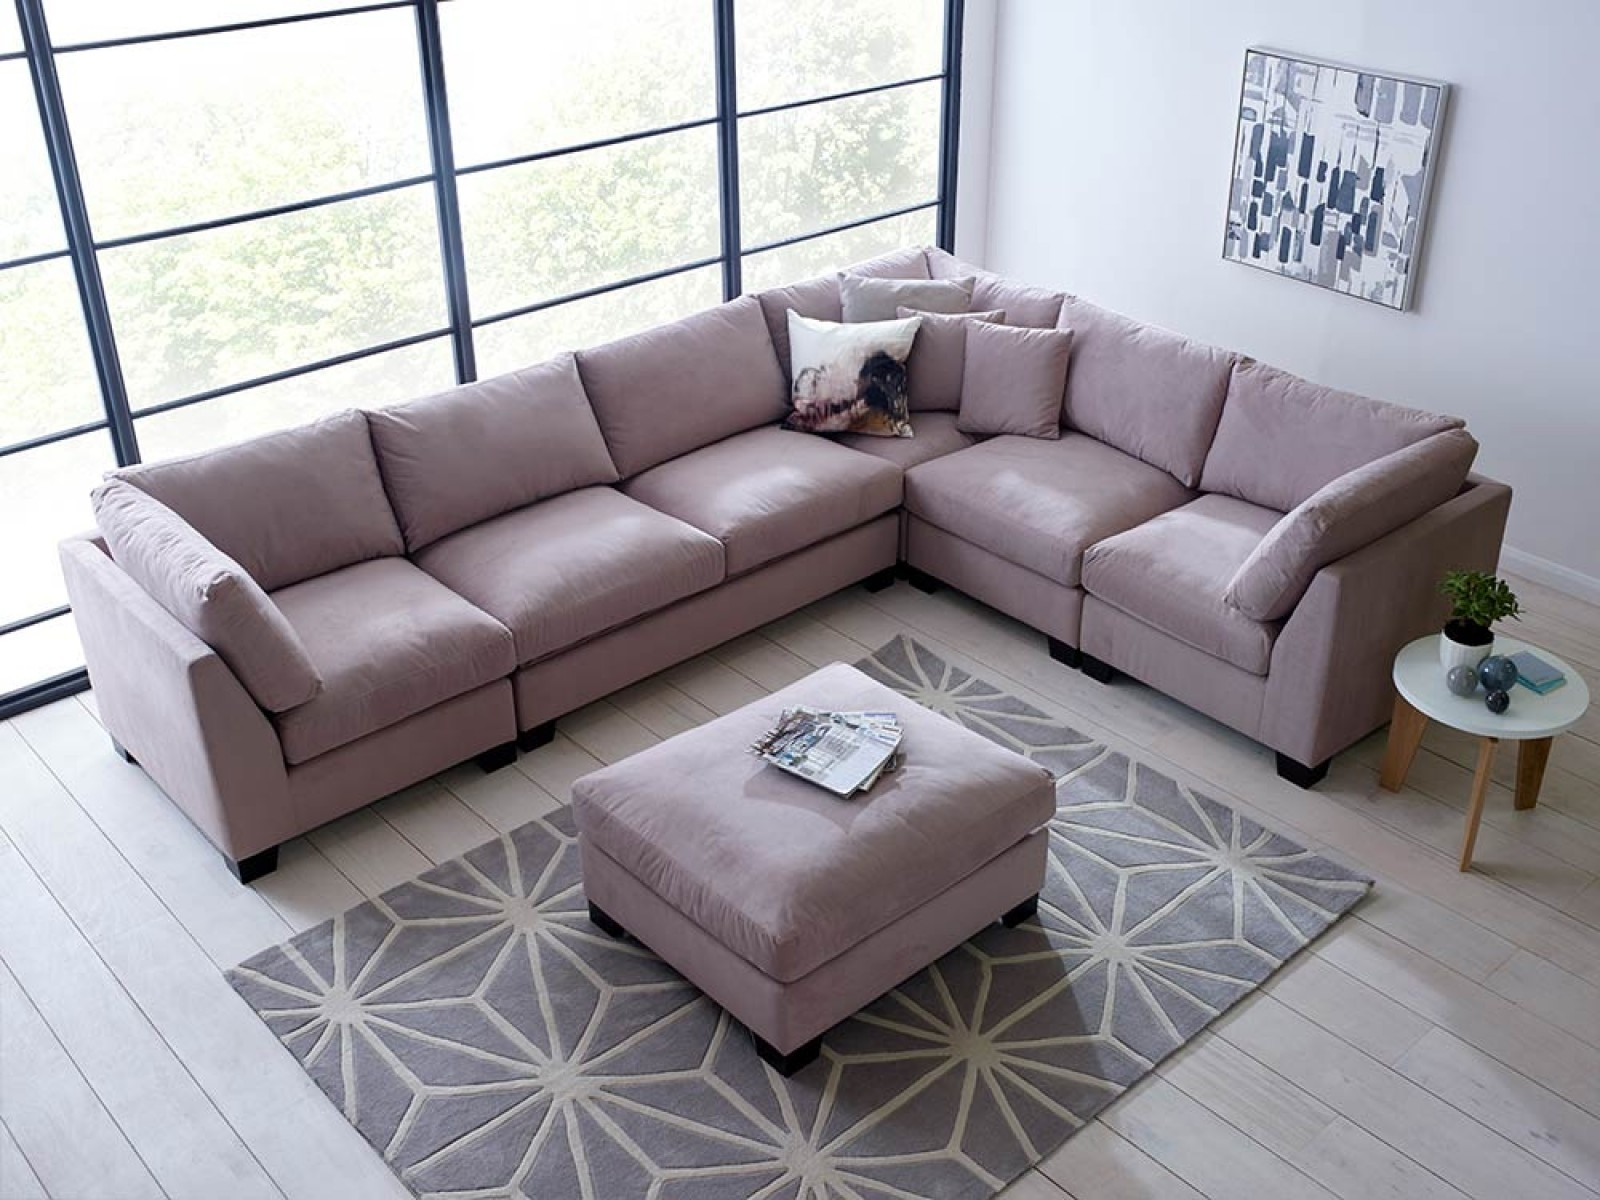 Modular Sofas, Sectional Sofas | Living It Up Intended For Sectional Sofas That Can Be Rearranged (View 6 of 10)